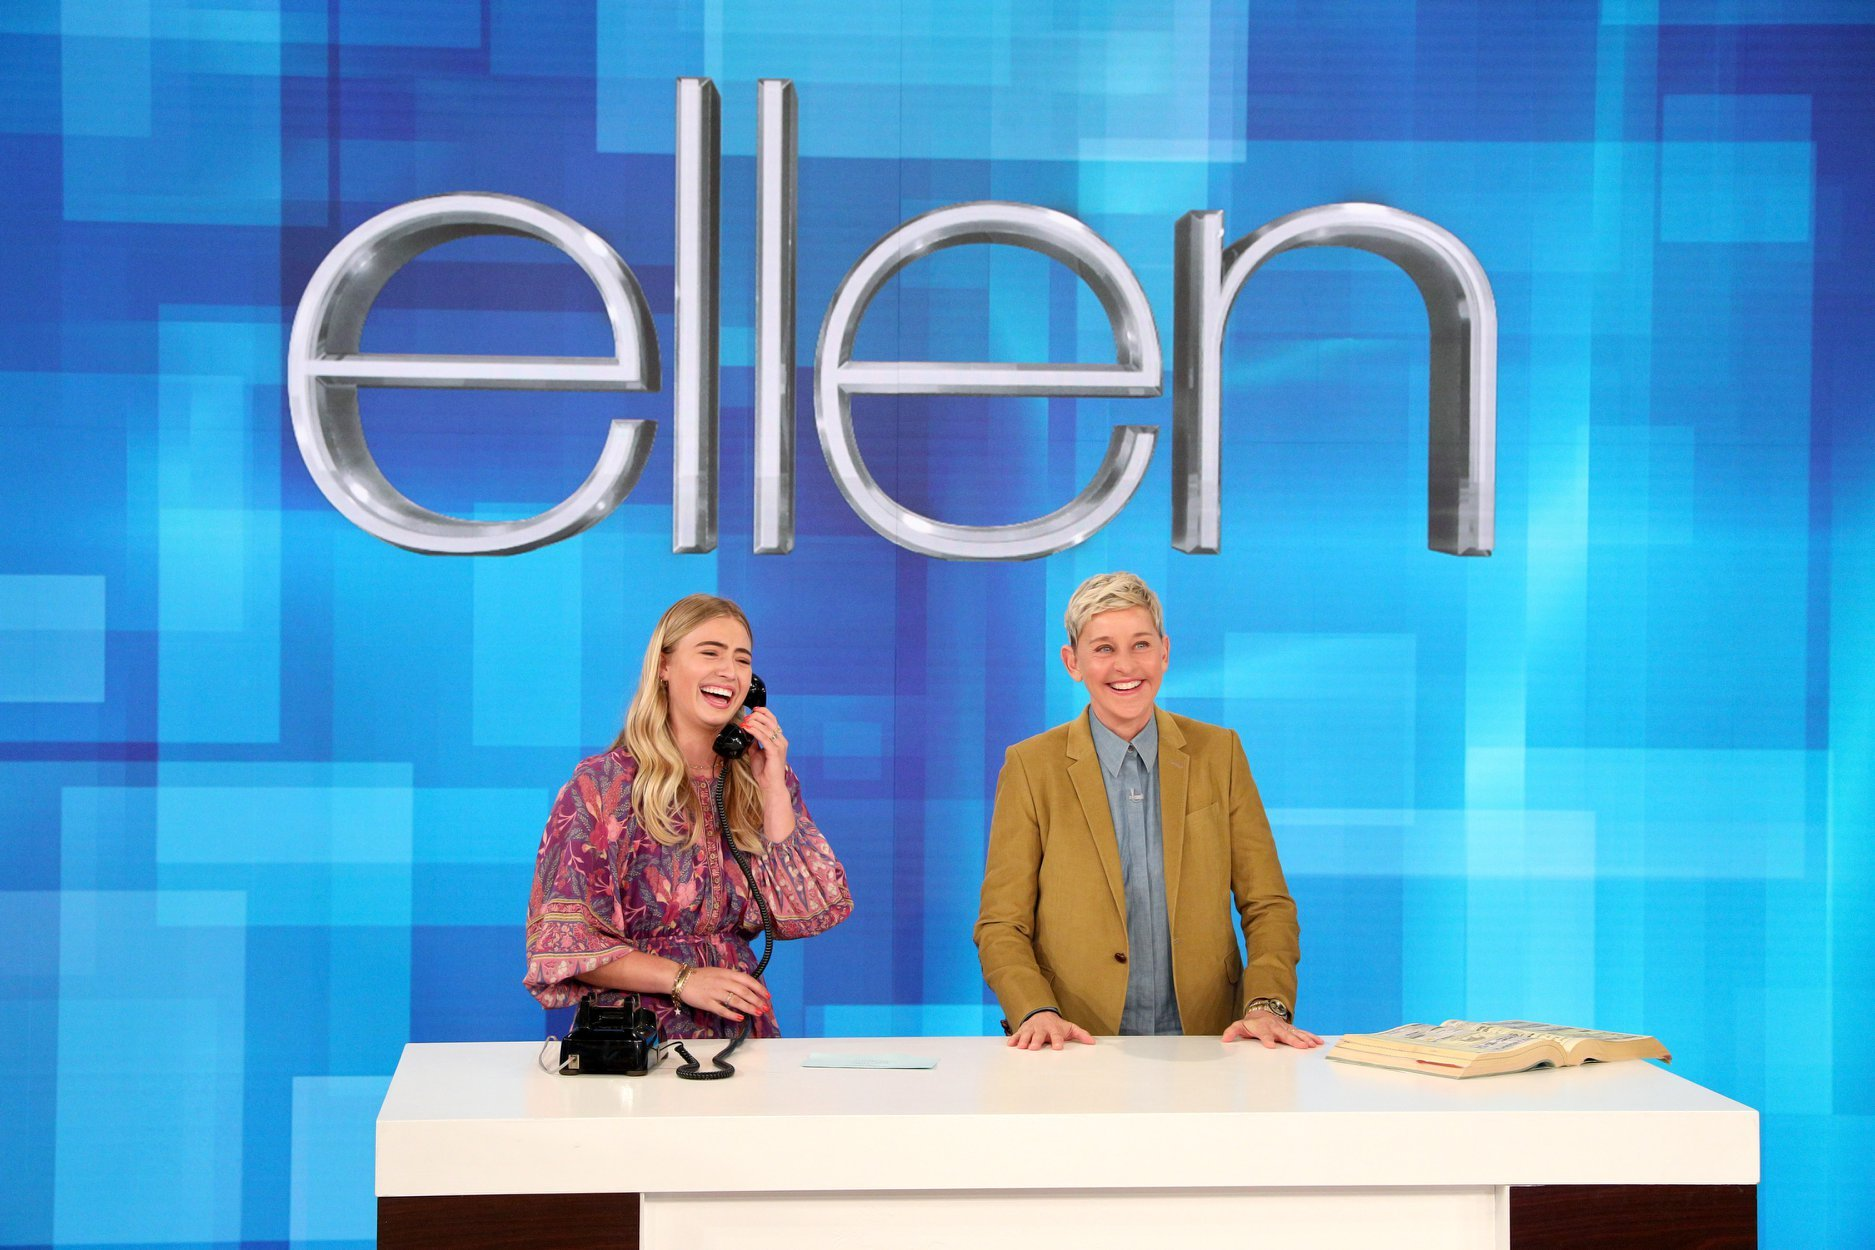 teen tries to use a rotary phone on ellen